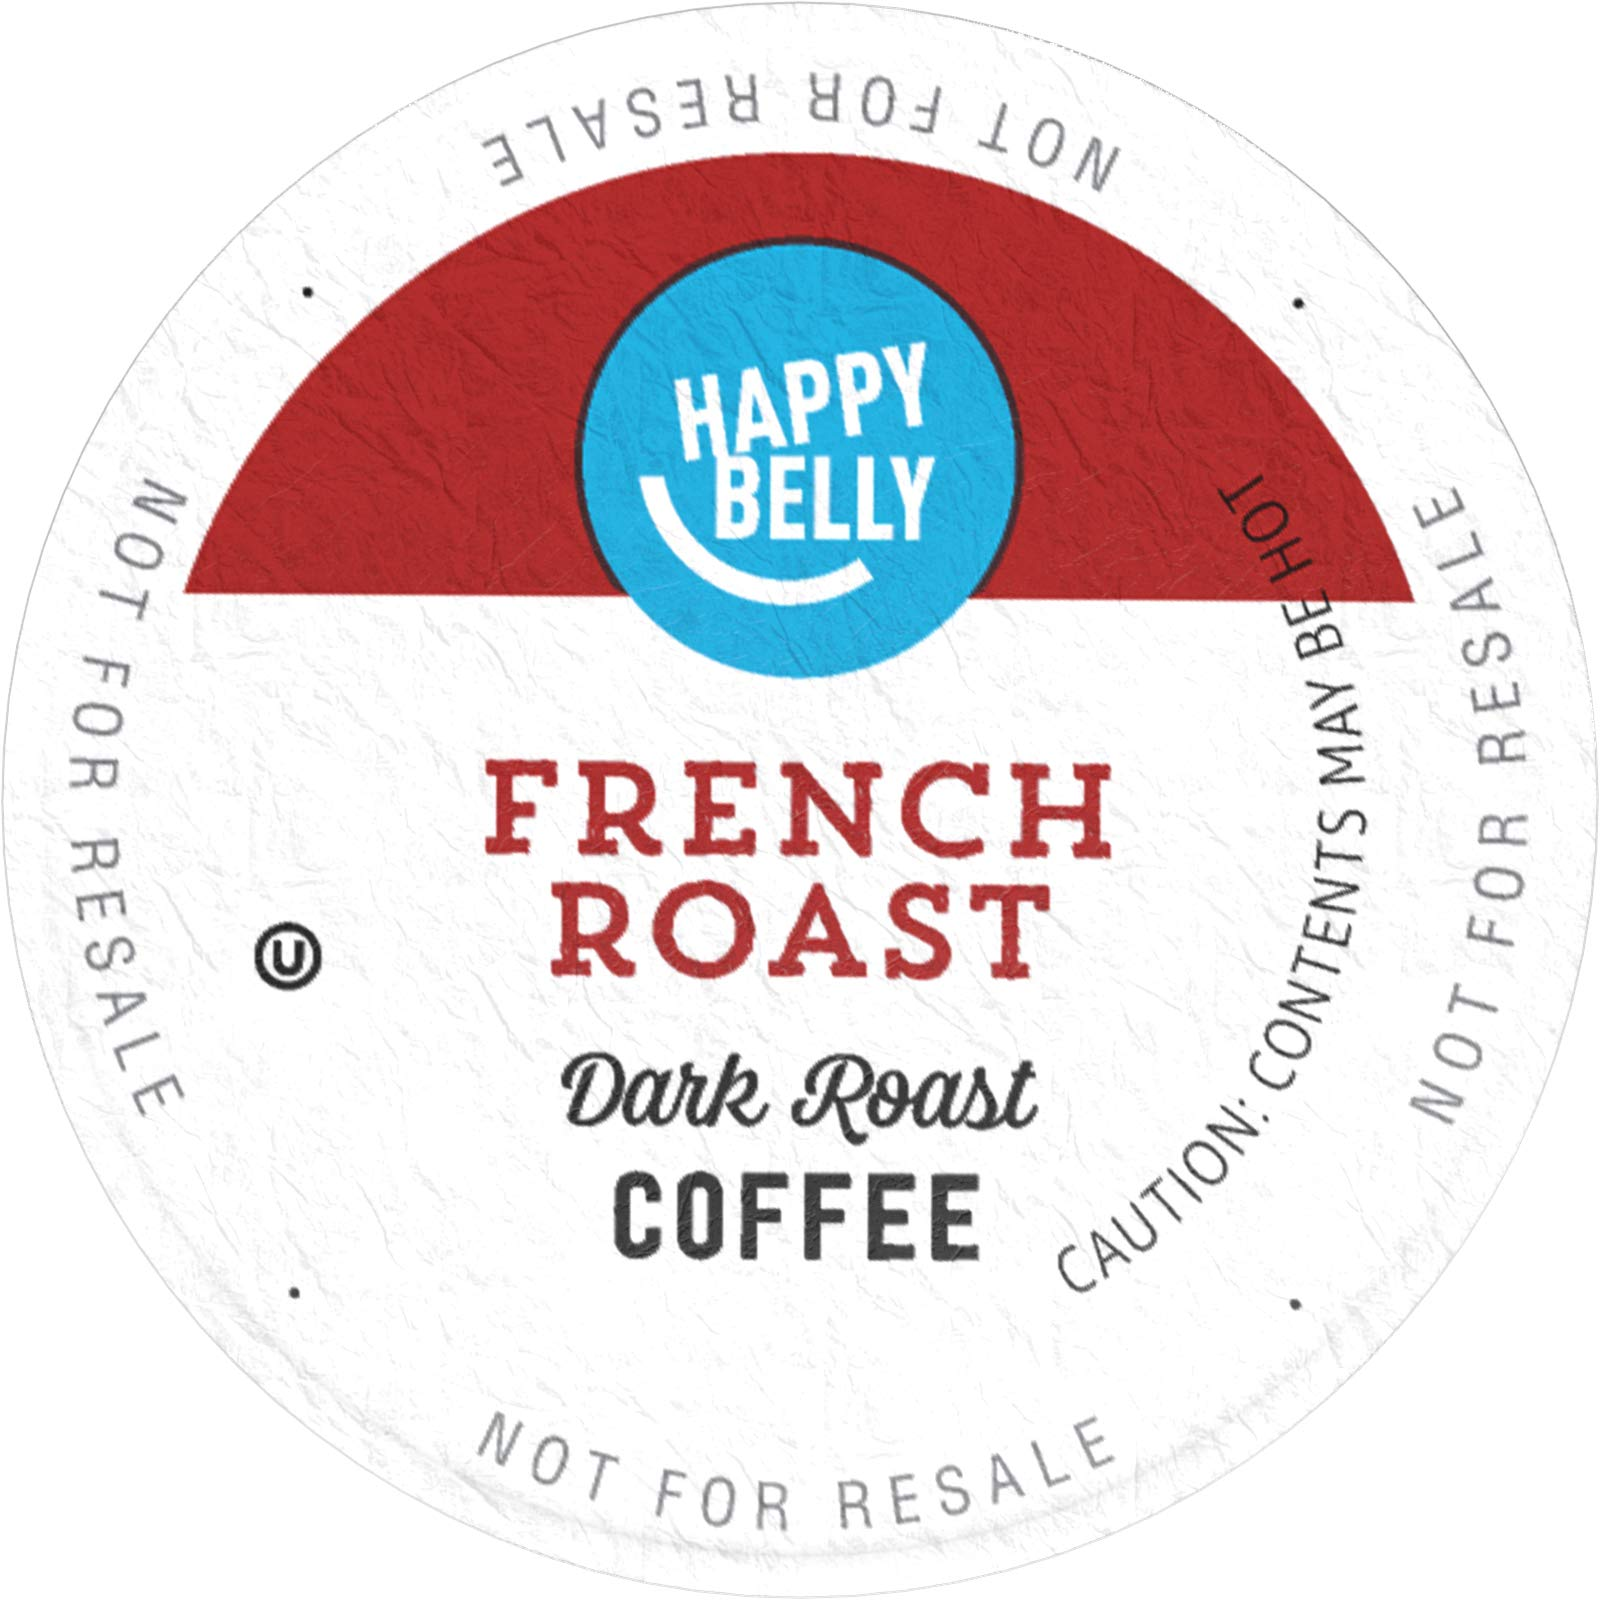 Amazon Brand - 100 Ct. Happy Belly Dark Roast Coffee Pods, French Roast, Compatible with Keurig 2.0 K-Cup Brewers by Happy Belly (Image #2)